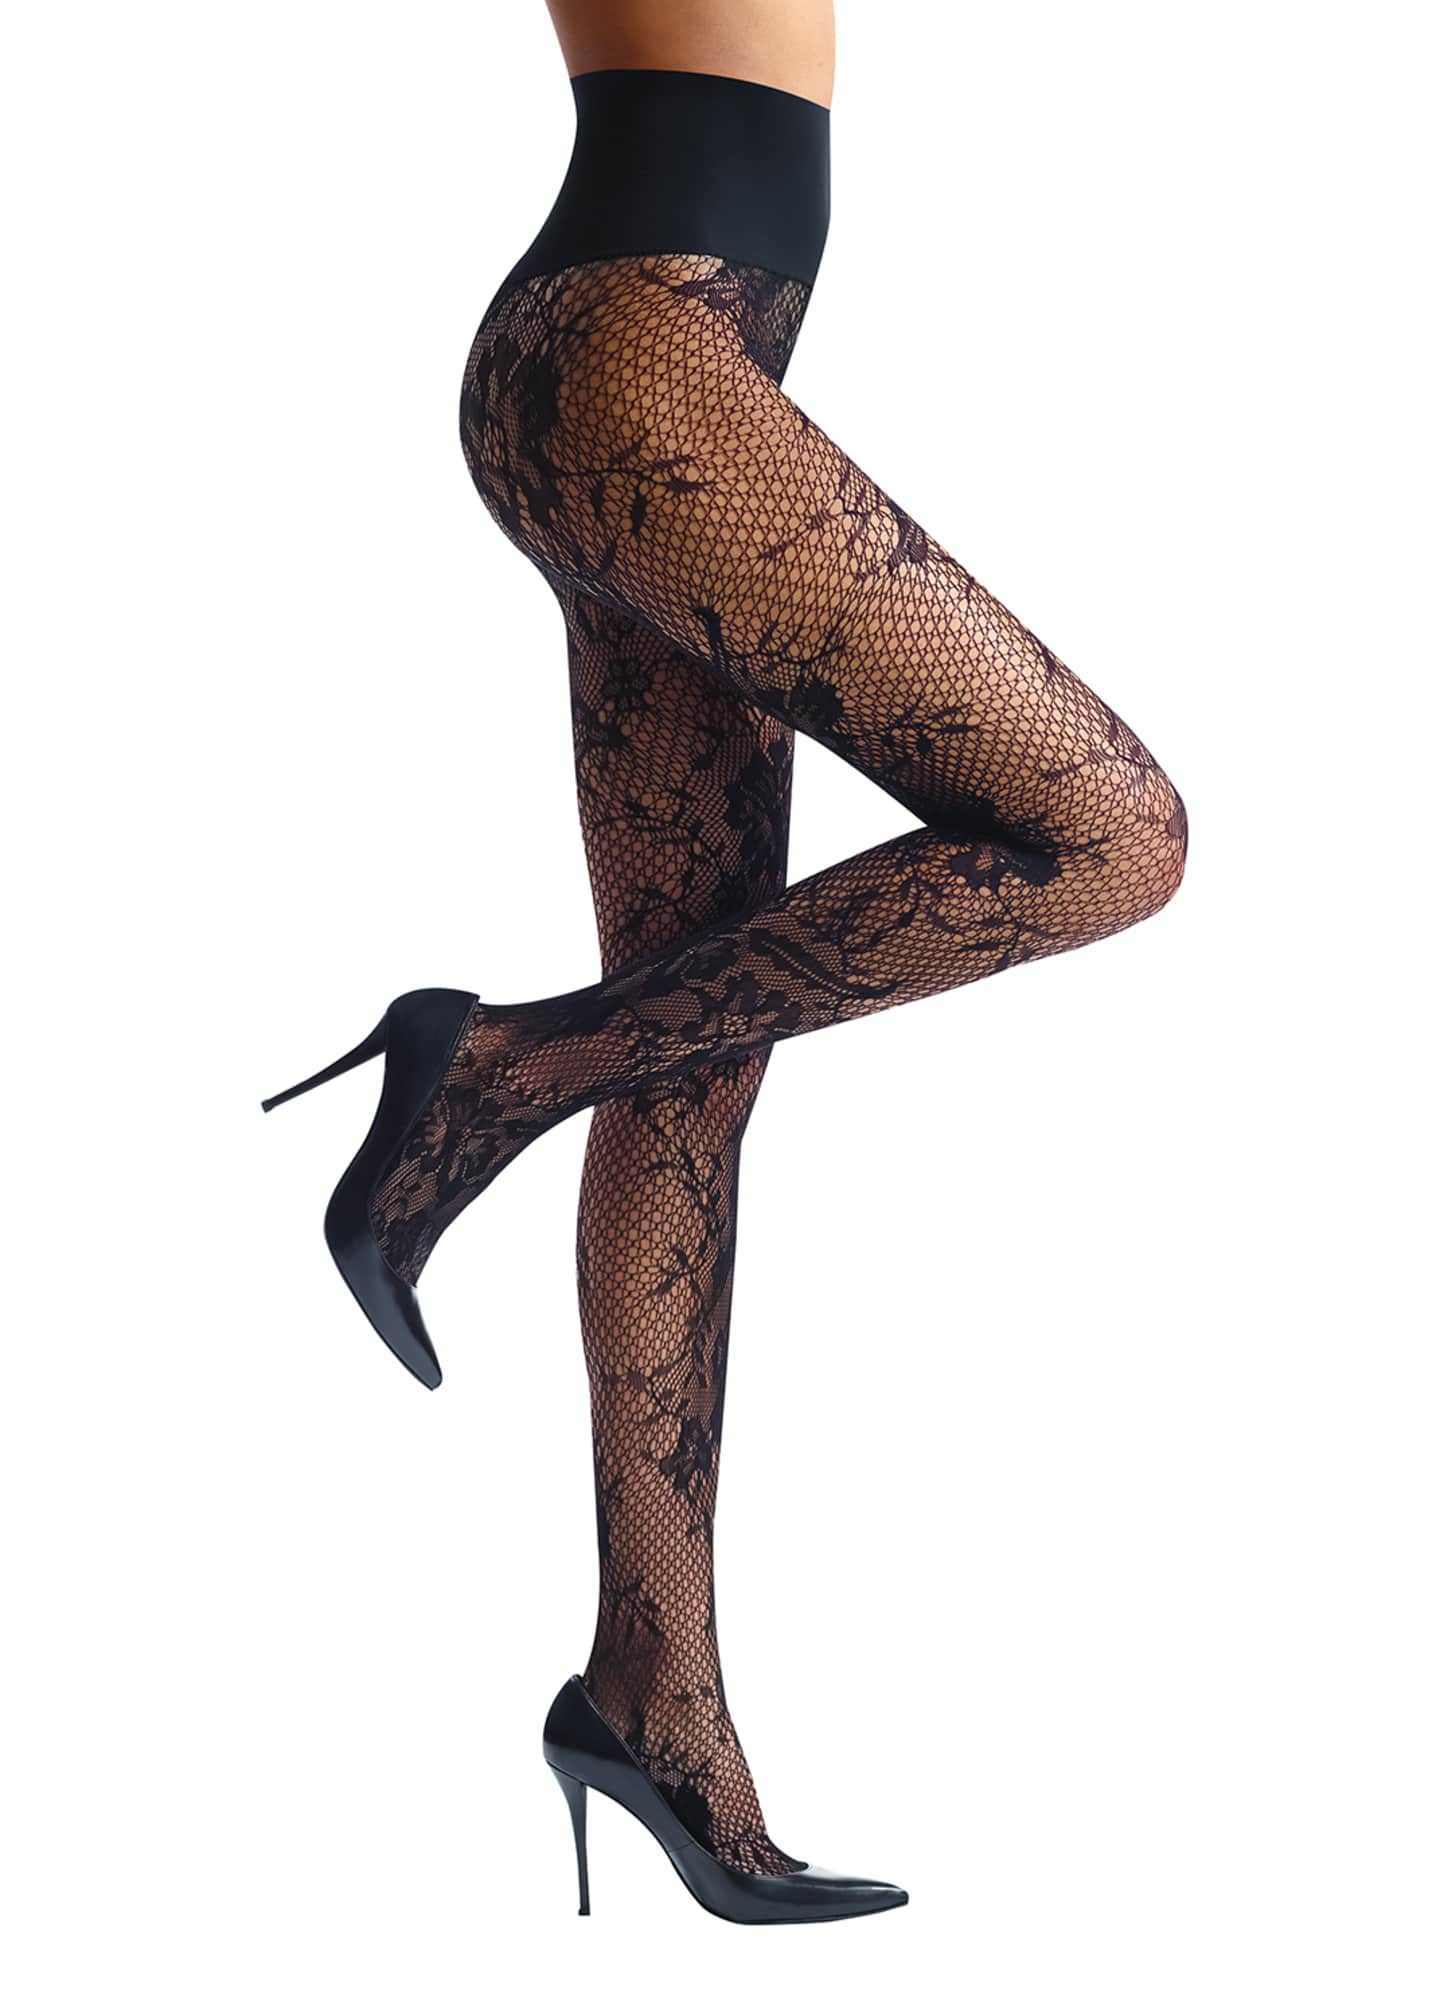 Commando Floral Net Tights